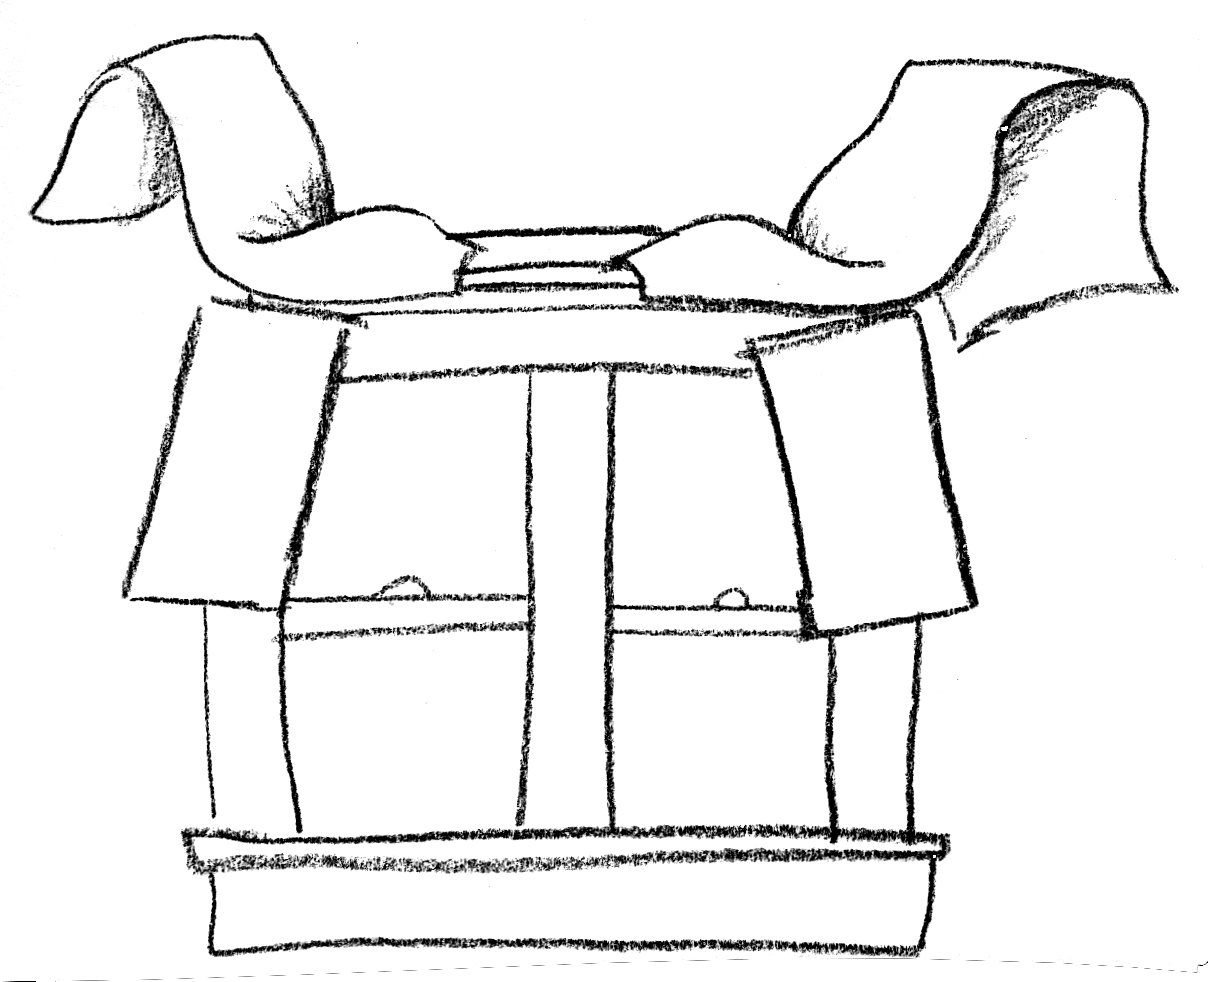 Though these pieces are shown cut, this is basically how you begin. Large, large curtains attached at the top to the rod and ready to style as they flow towards the floor.